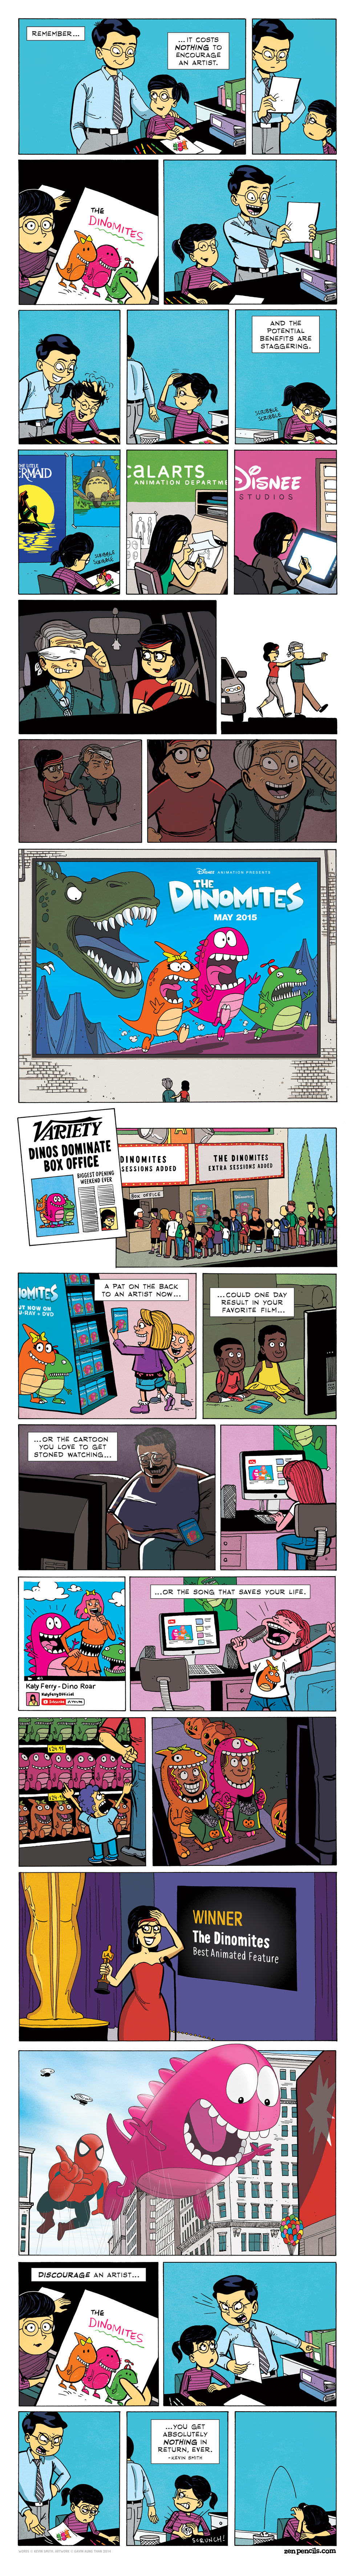 A comic strip by Gavin Aung Than. Please support and check out his work at www.zenpencils.com